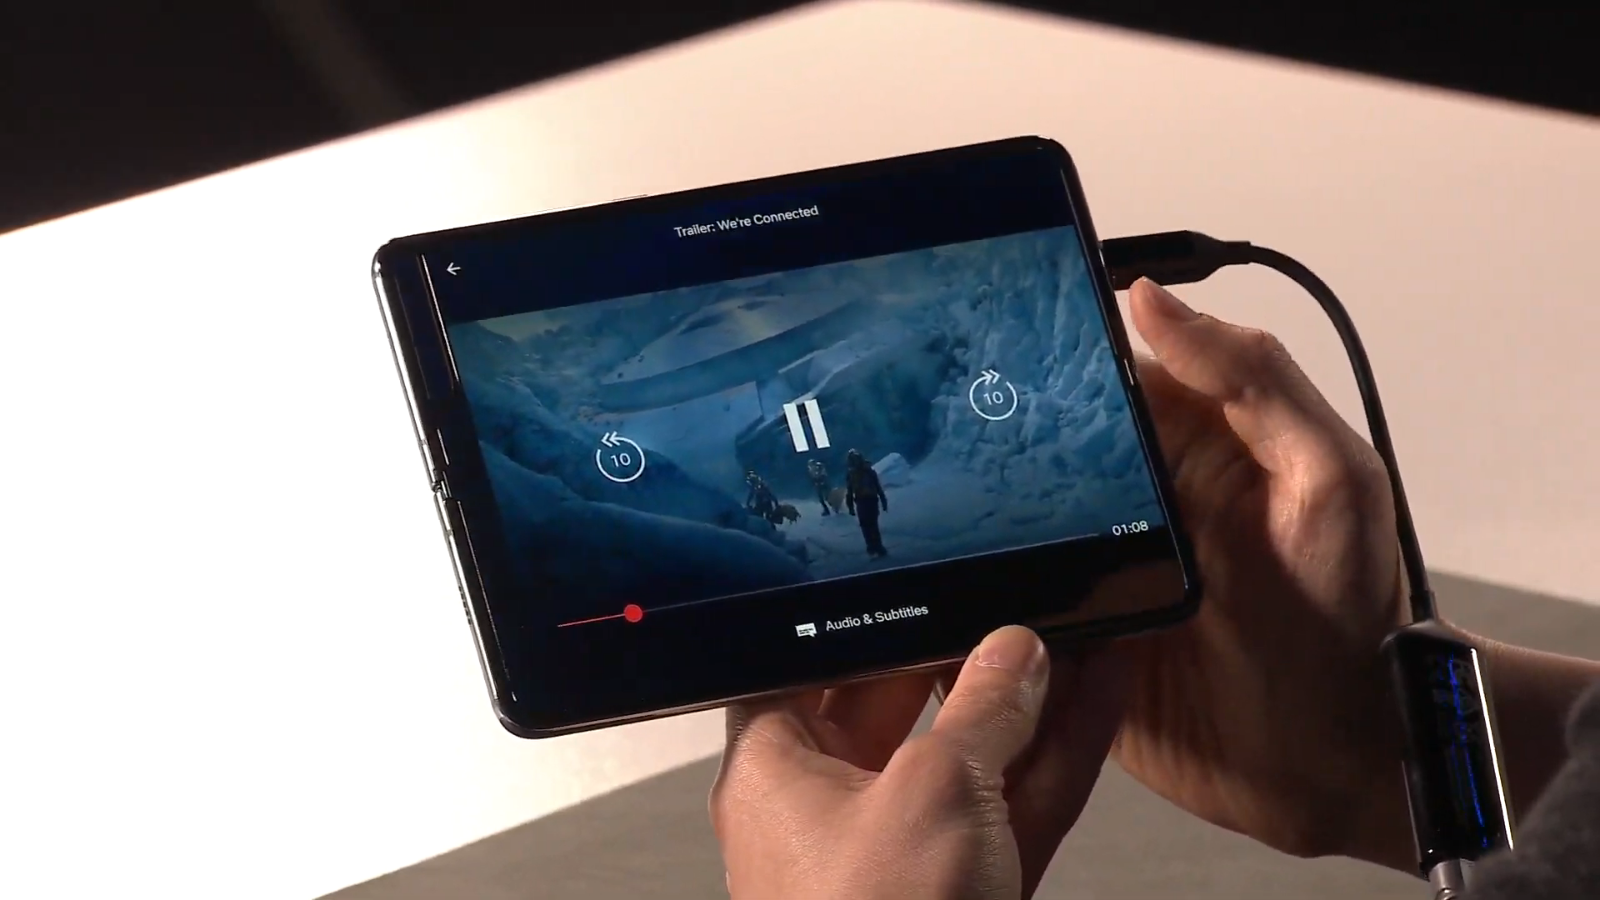 Netflix on the interior screen of the Galaxy Fold.